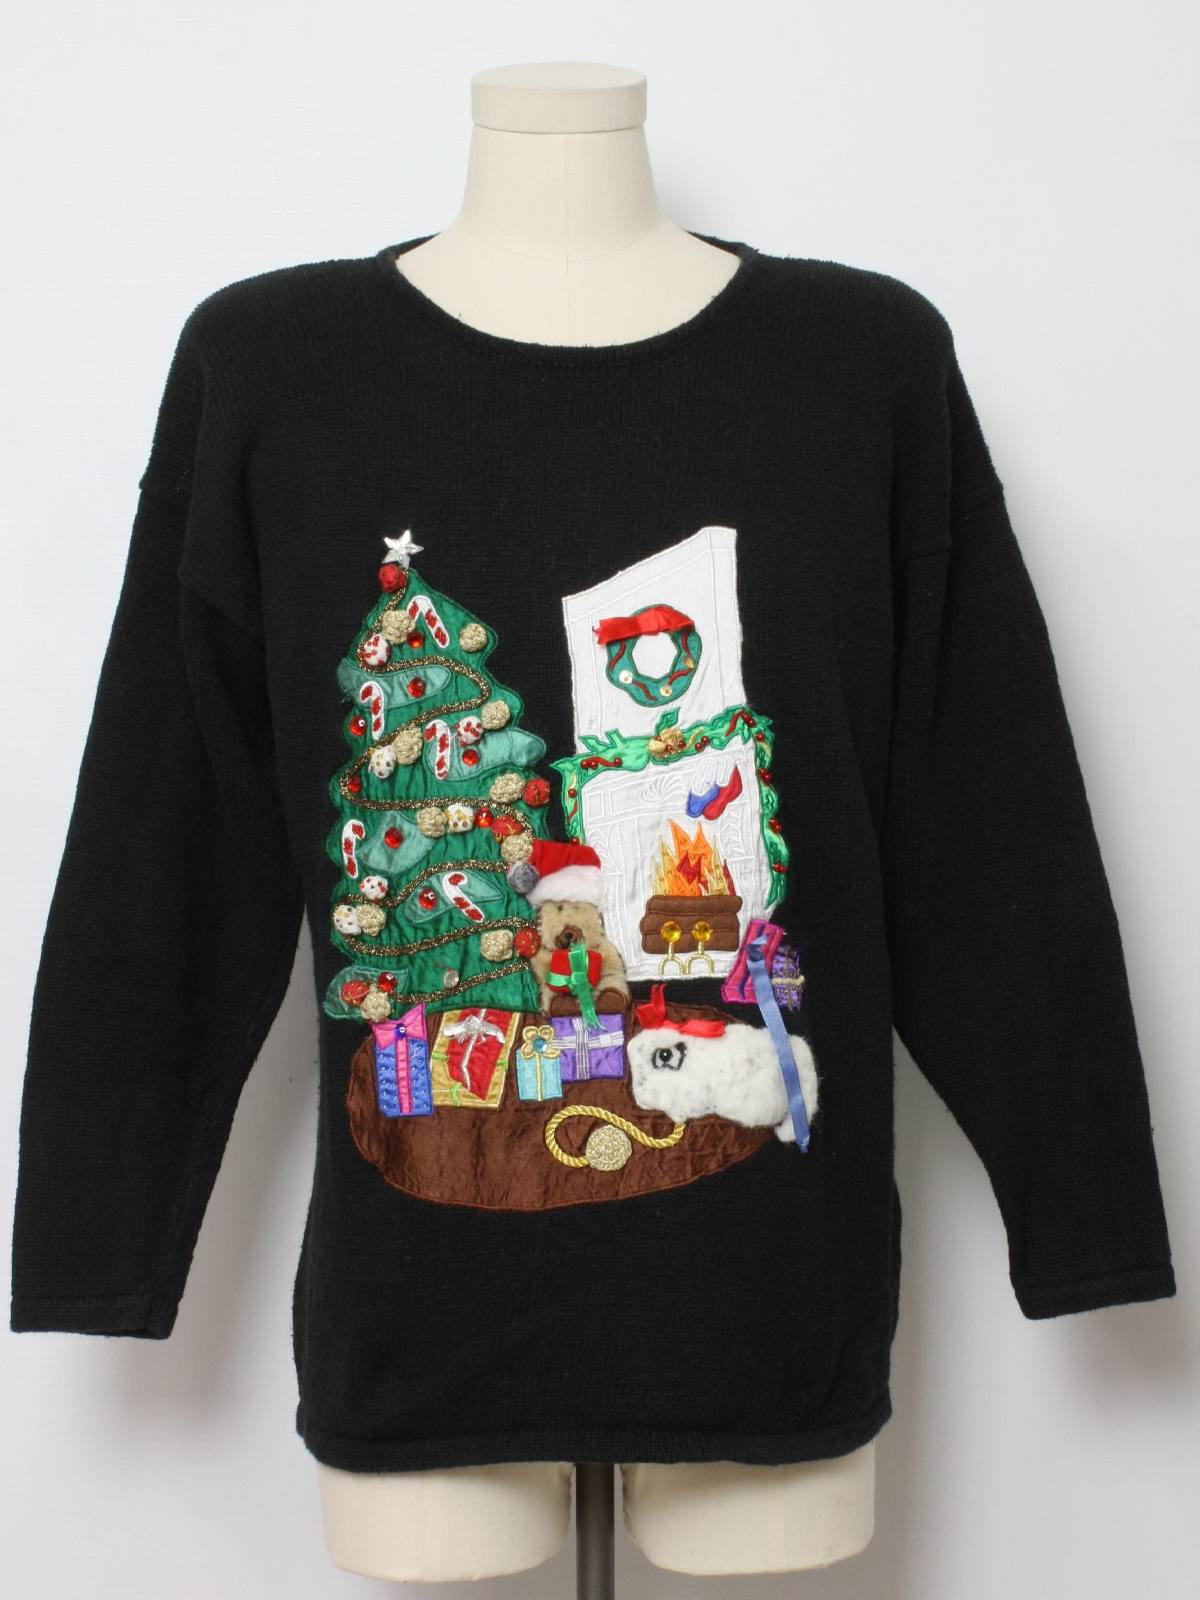 Ugly Christmas Sweater Work In Progress Unisex Black Background Cotton Ramie Blend Pullover